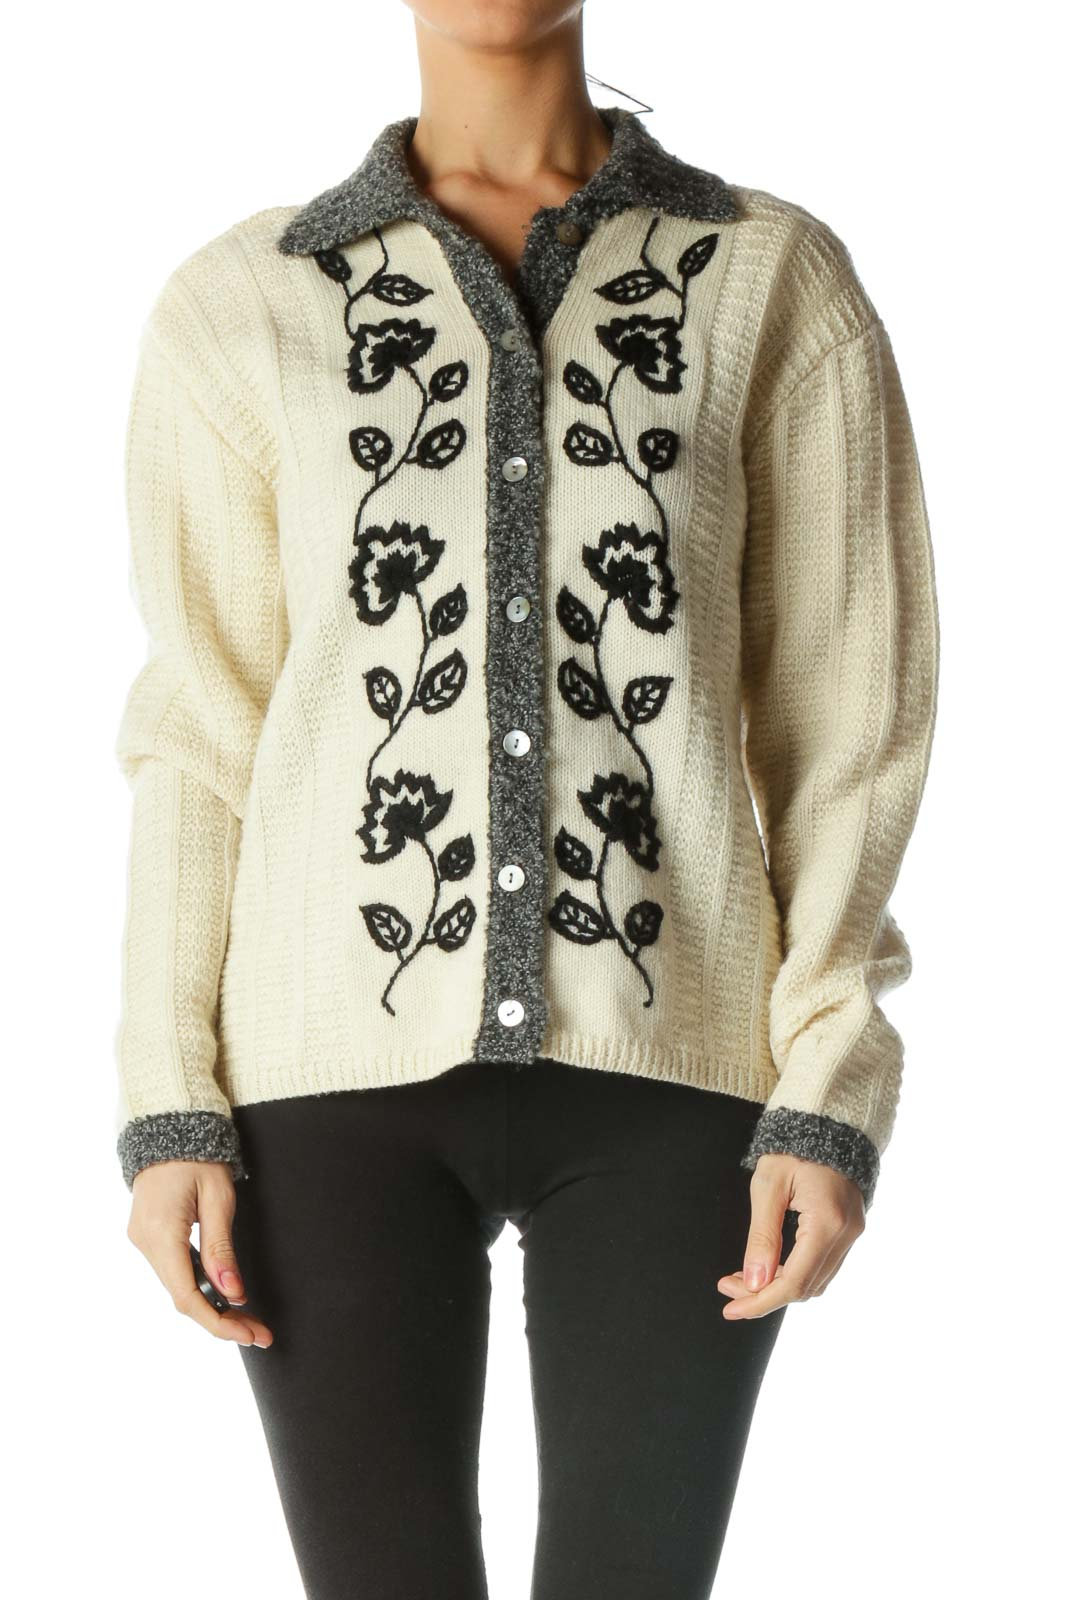 Blue and Cream Floral Print Knit Sweater Front